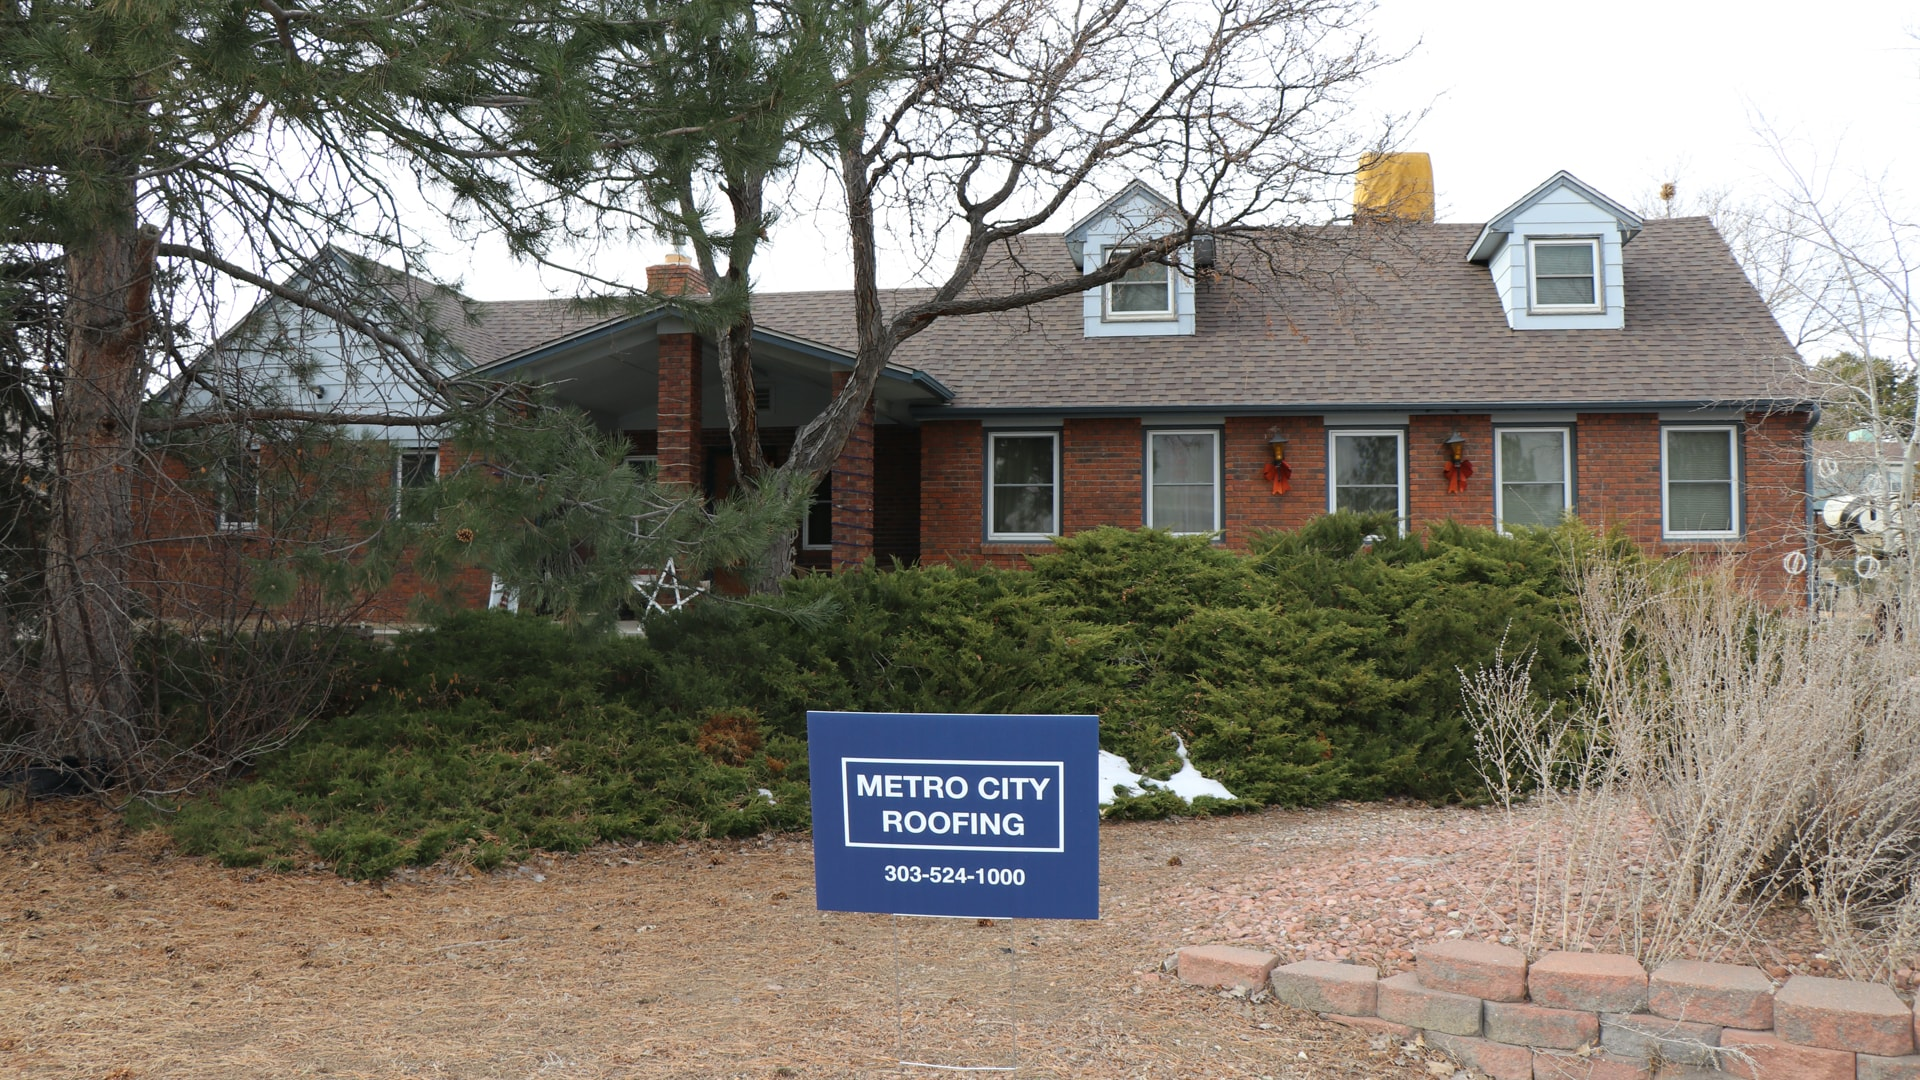 Red brick, ranch style home in Westminster, Colorado and blue Metro City Roofing sign in the foreground